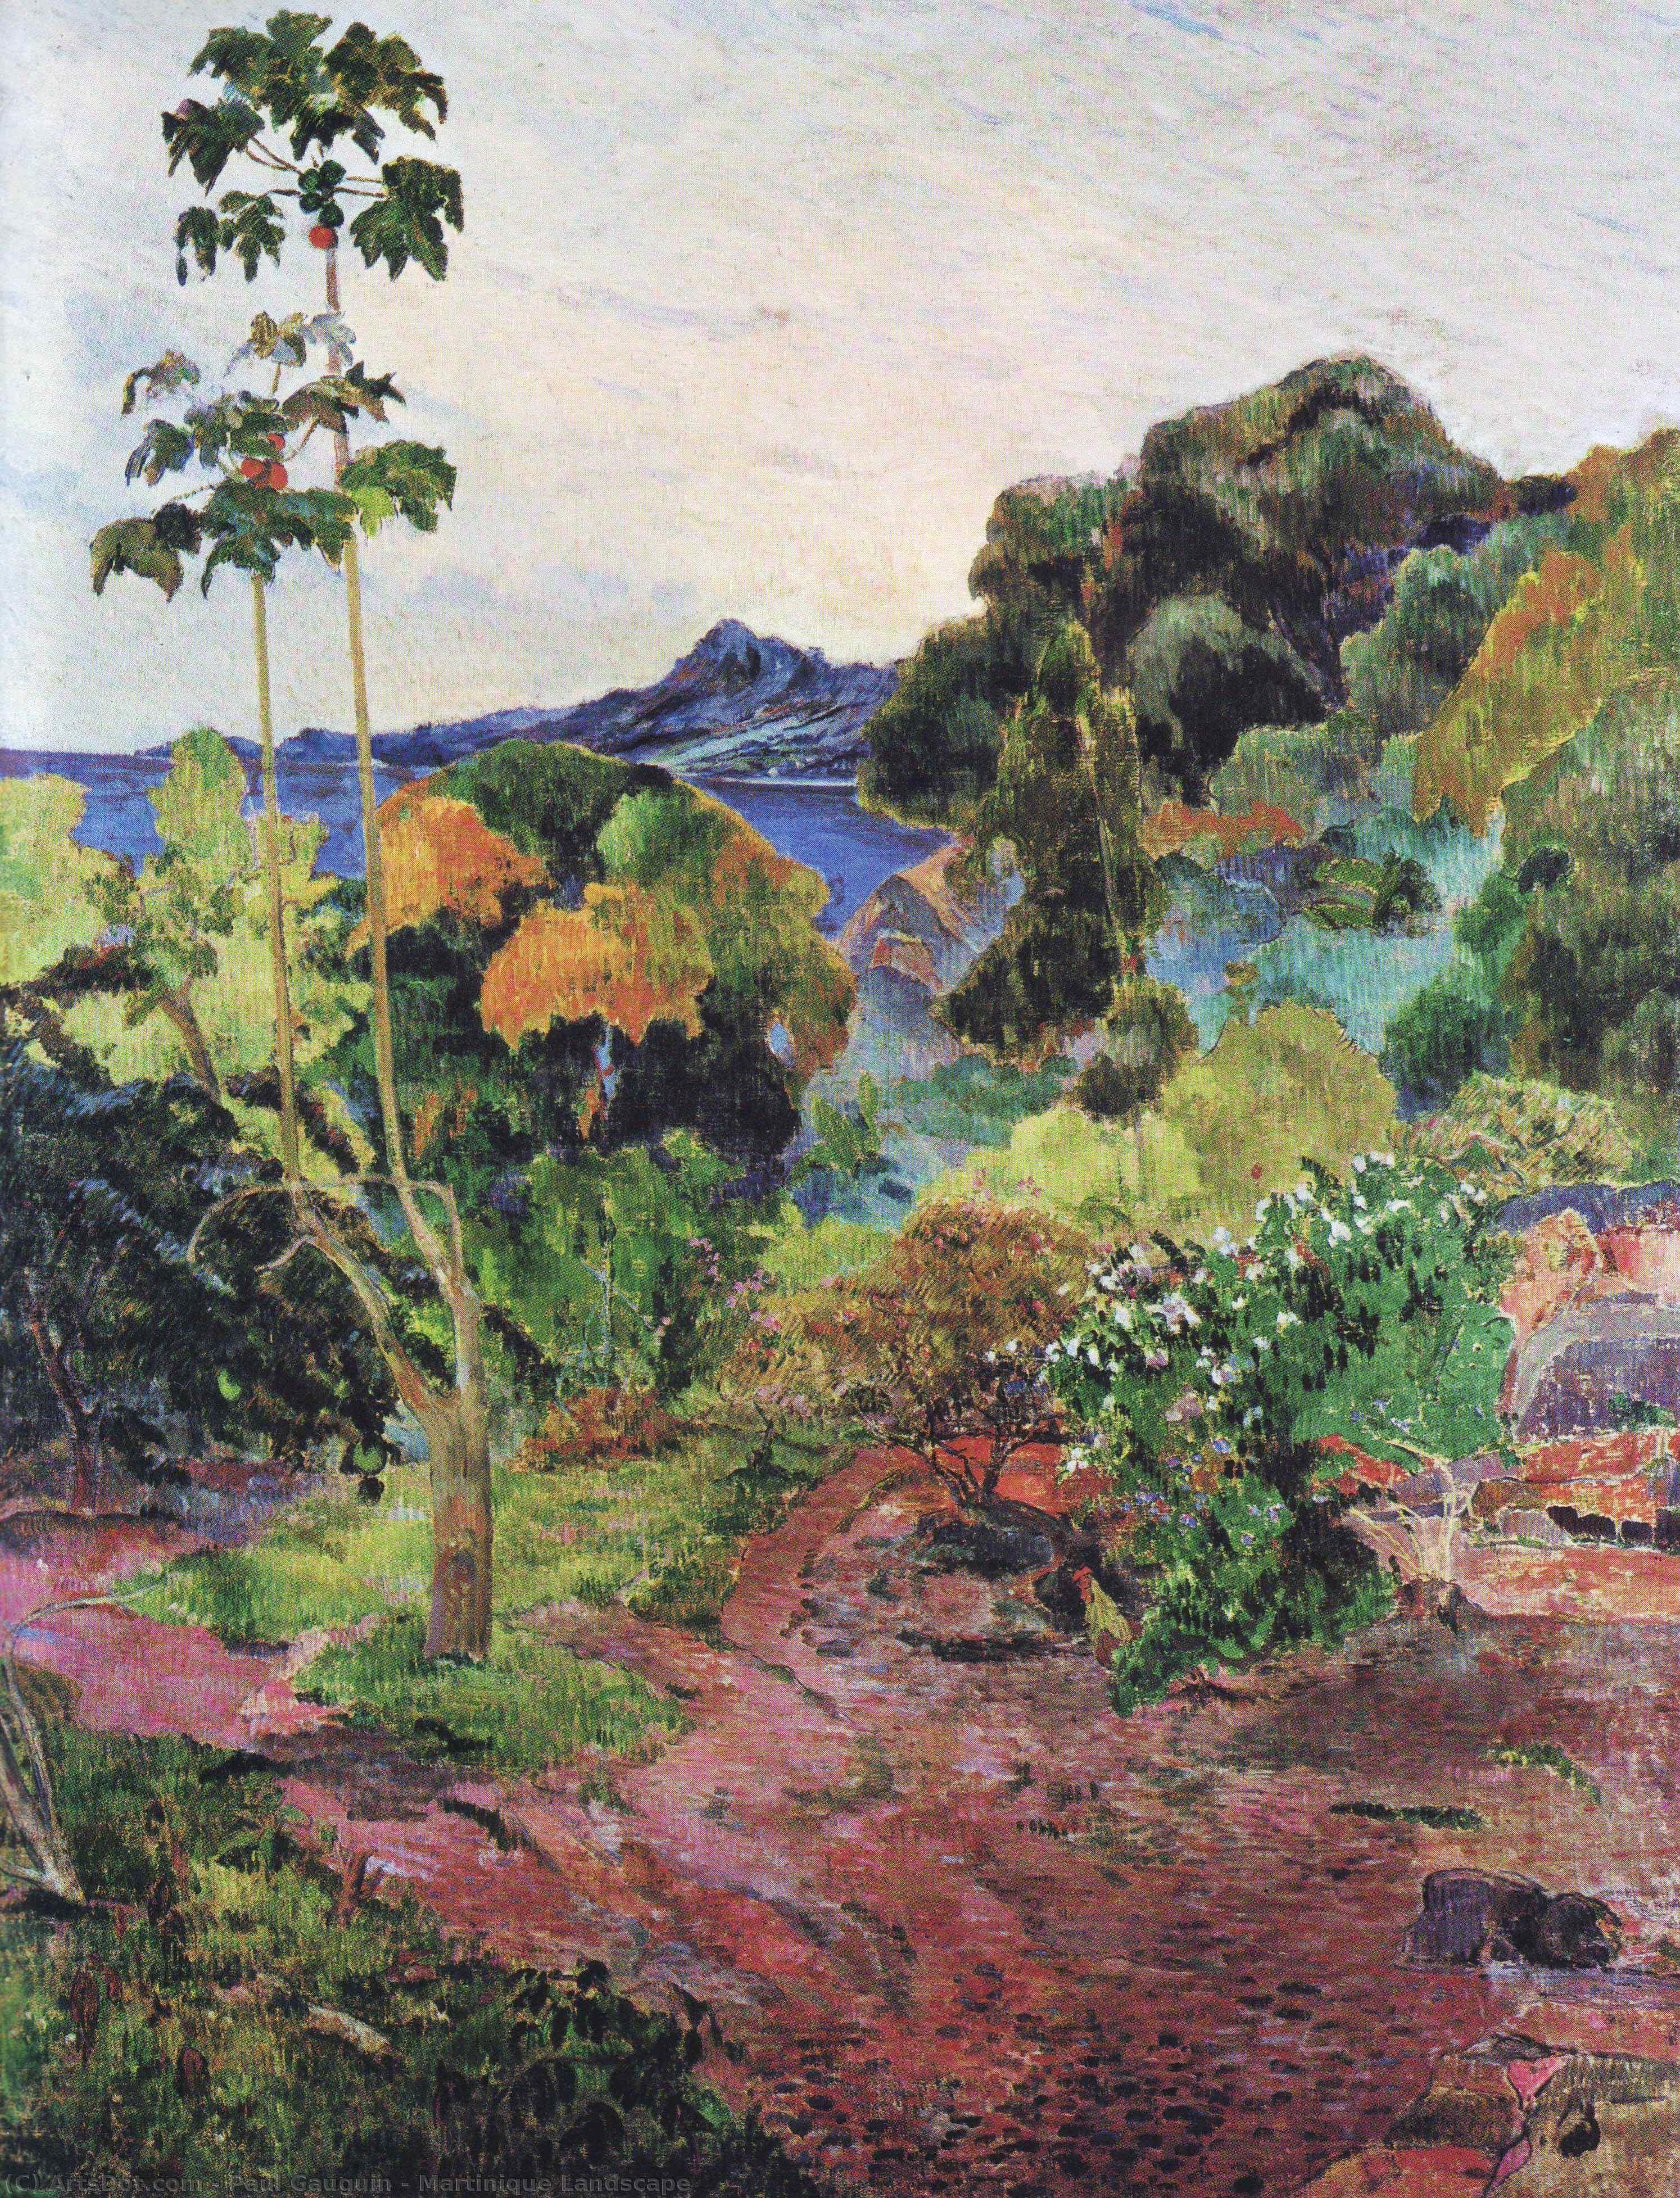 Wikioo.org - The Encyclopedia of Fine Arts - Painting, Artwork by Paul Gauguin - Martinique Landscape